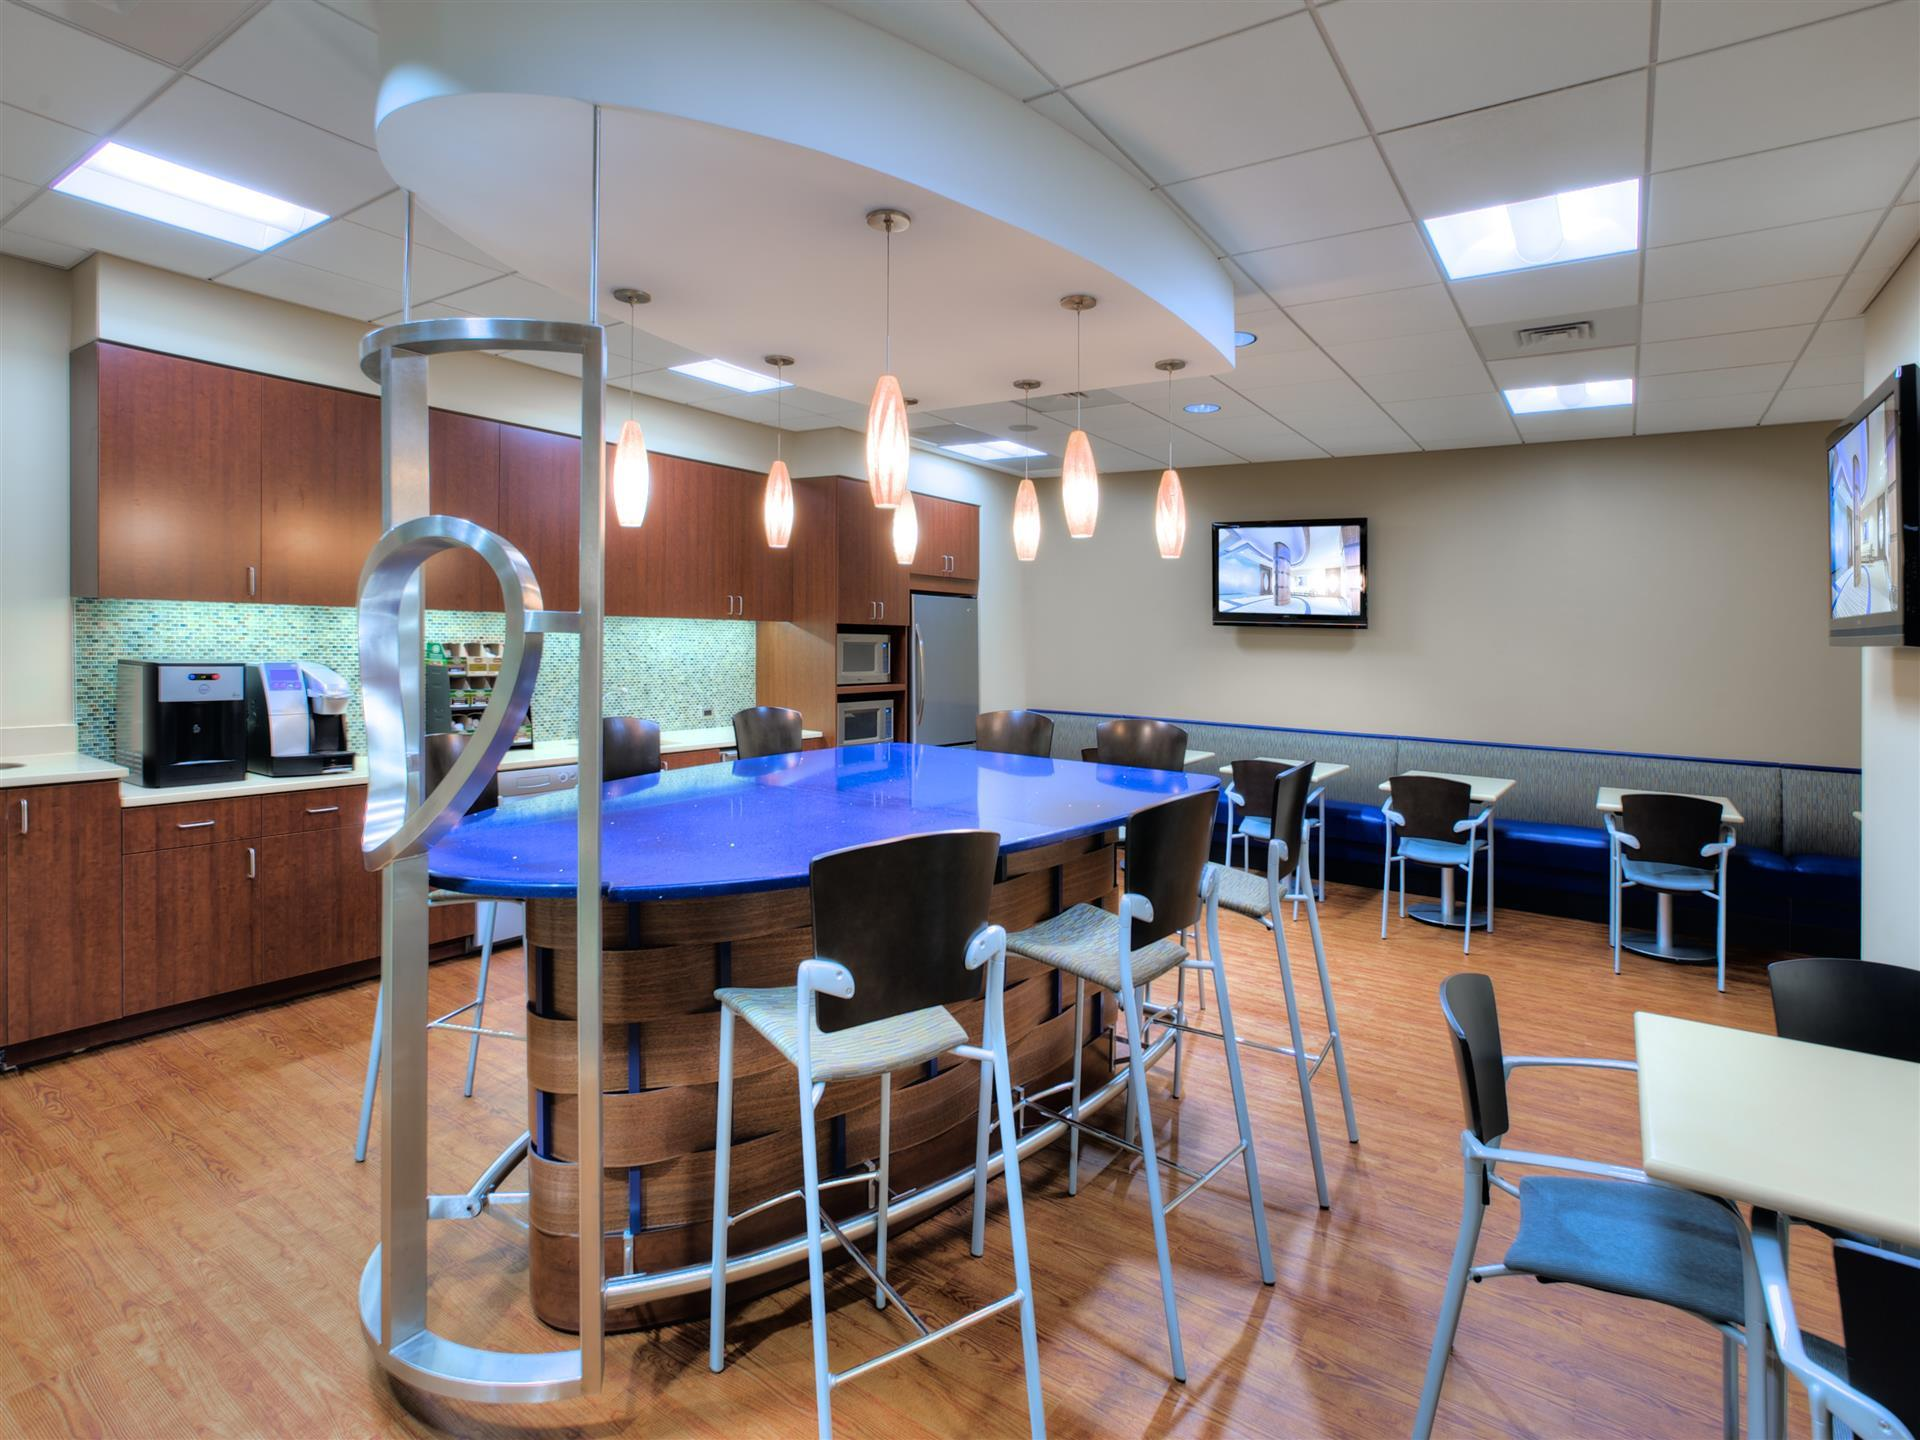 high top table with blue counter and modern hanging lights with stools and kitchen cafe area with tables and chairs